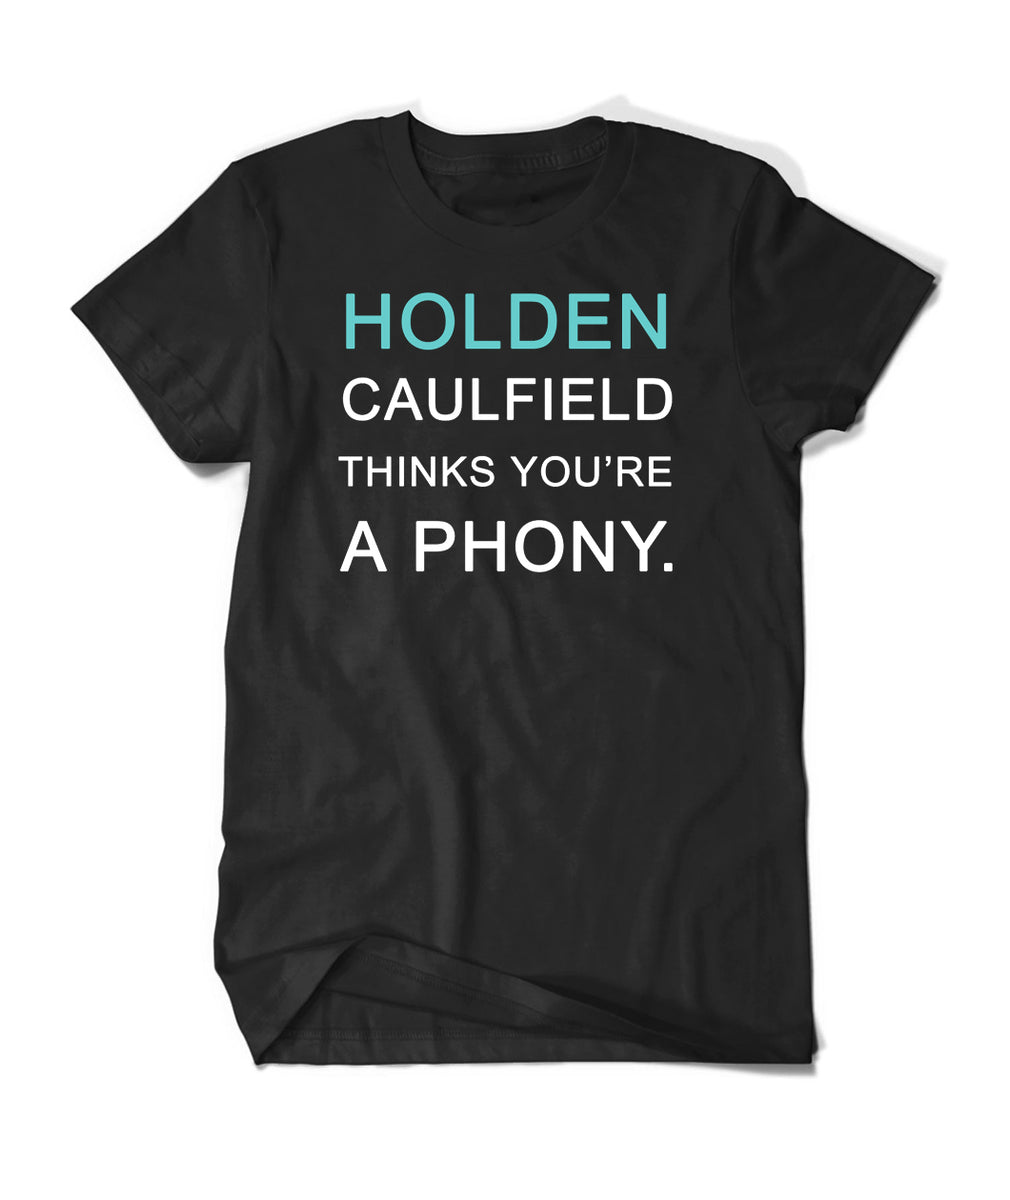 holden caulfield thinks youre a phony shirt � dftba